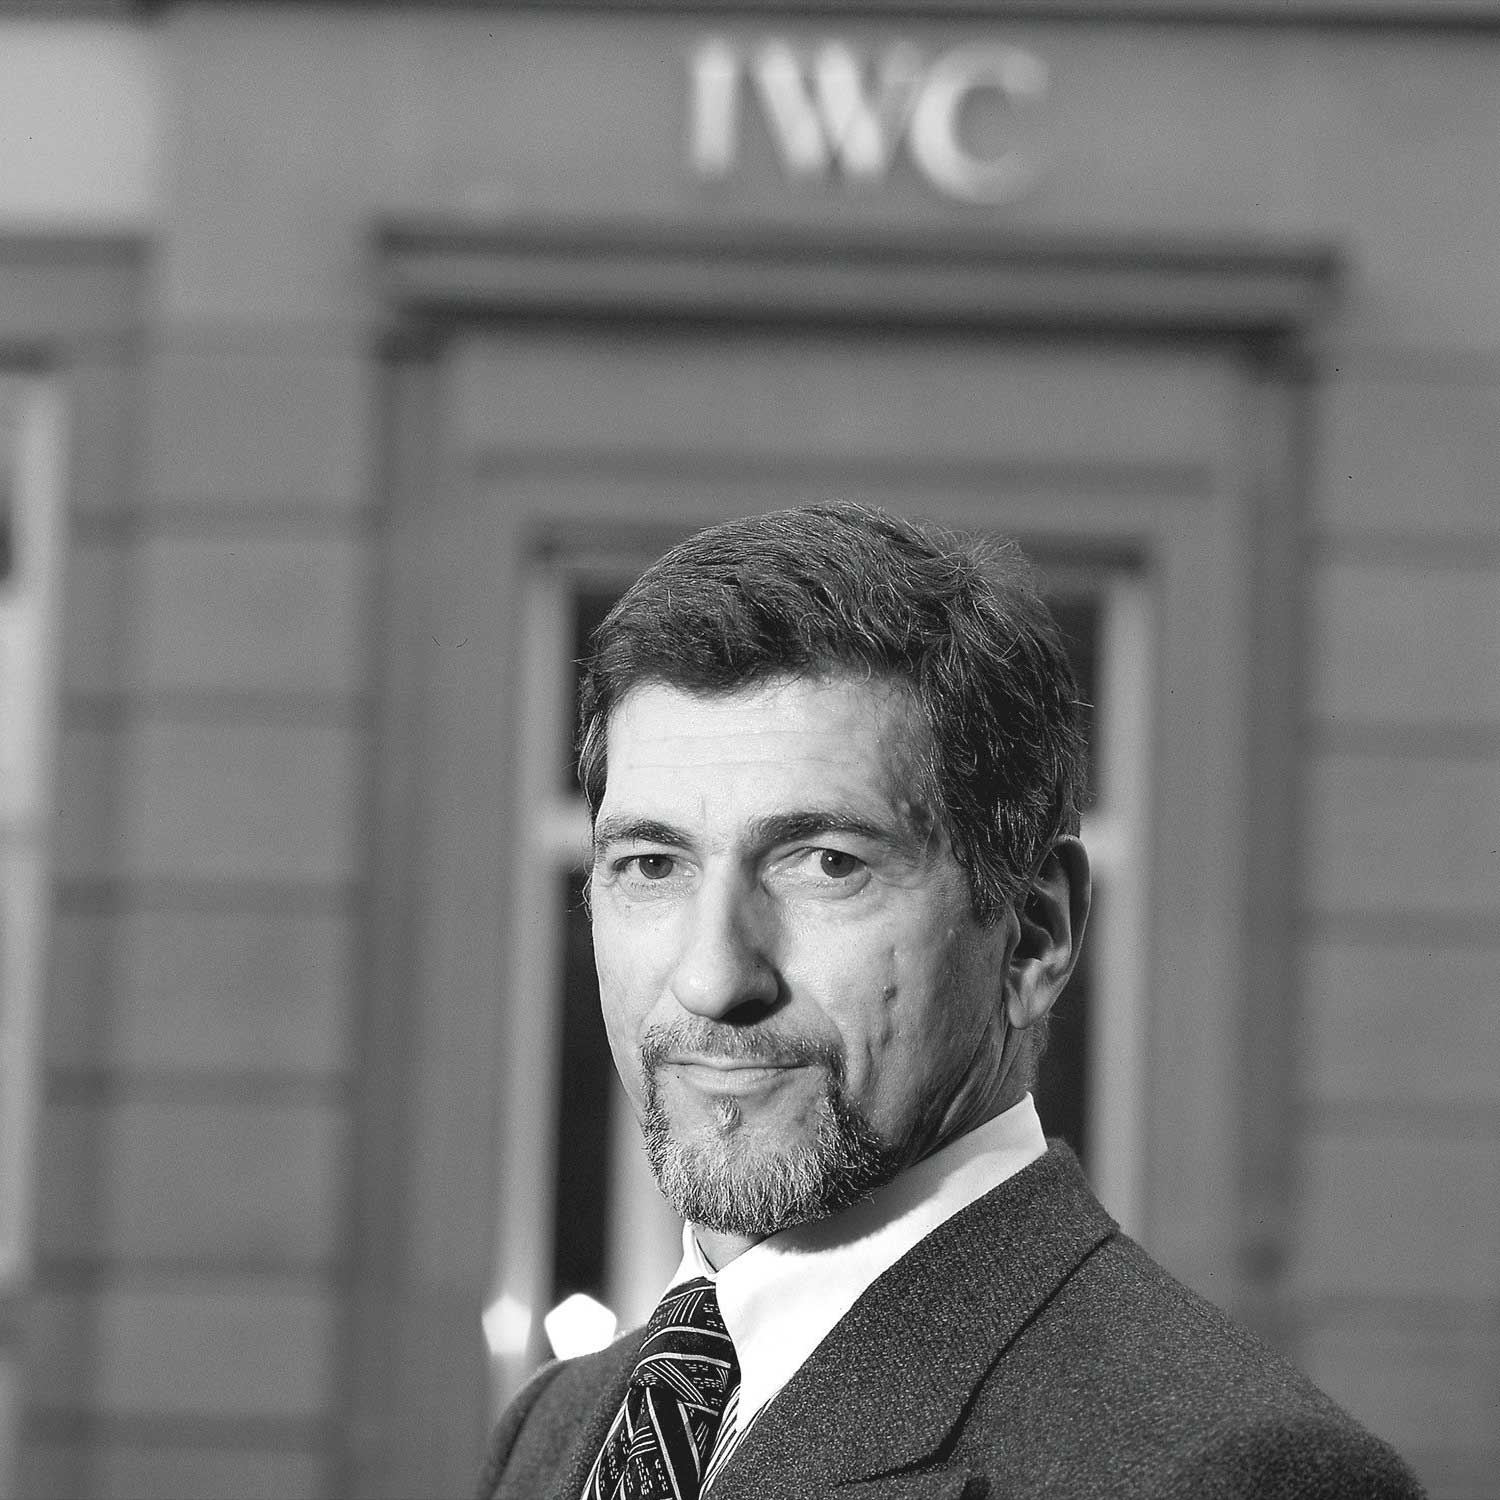 Günter Blümlein joined IWC as the CEO in 1982 (Image: Phillips Watches)